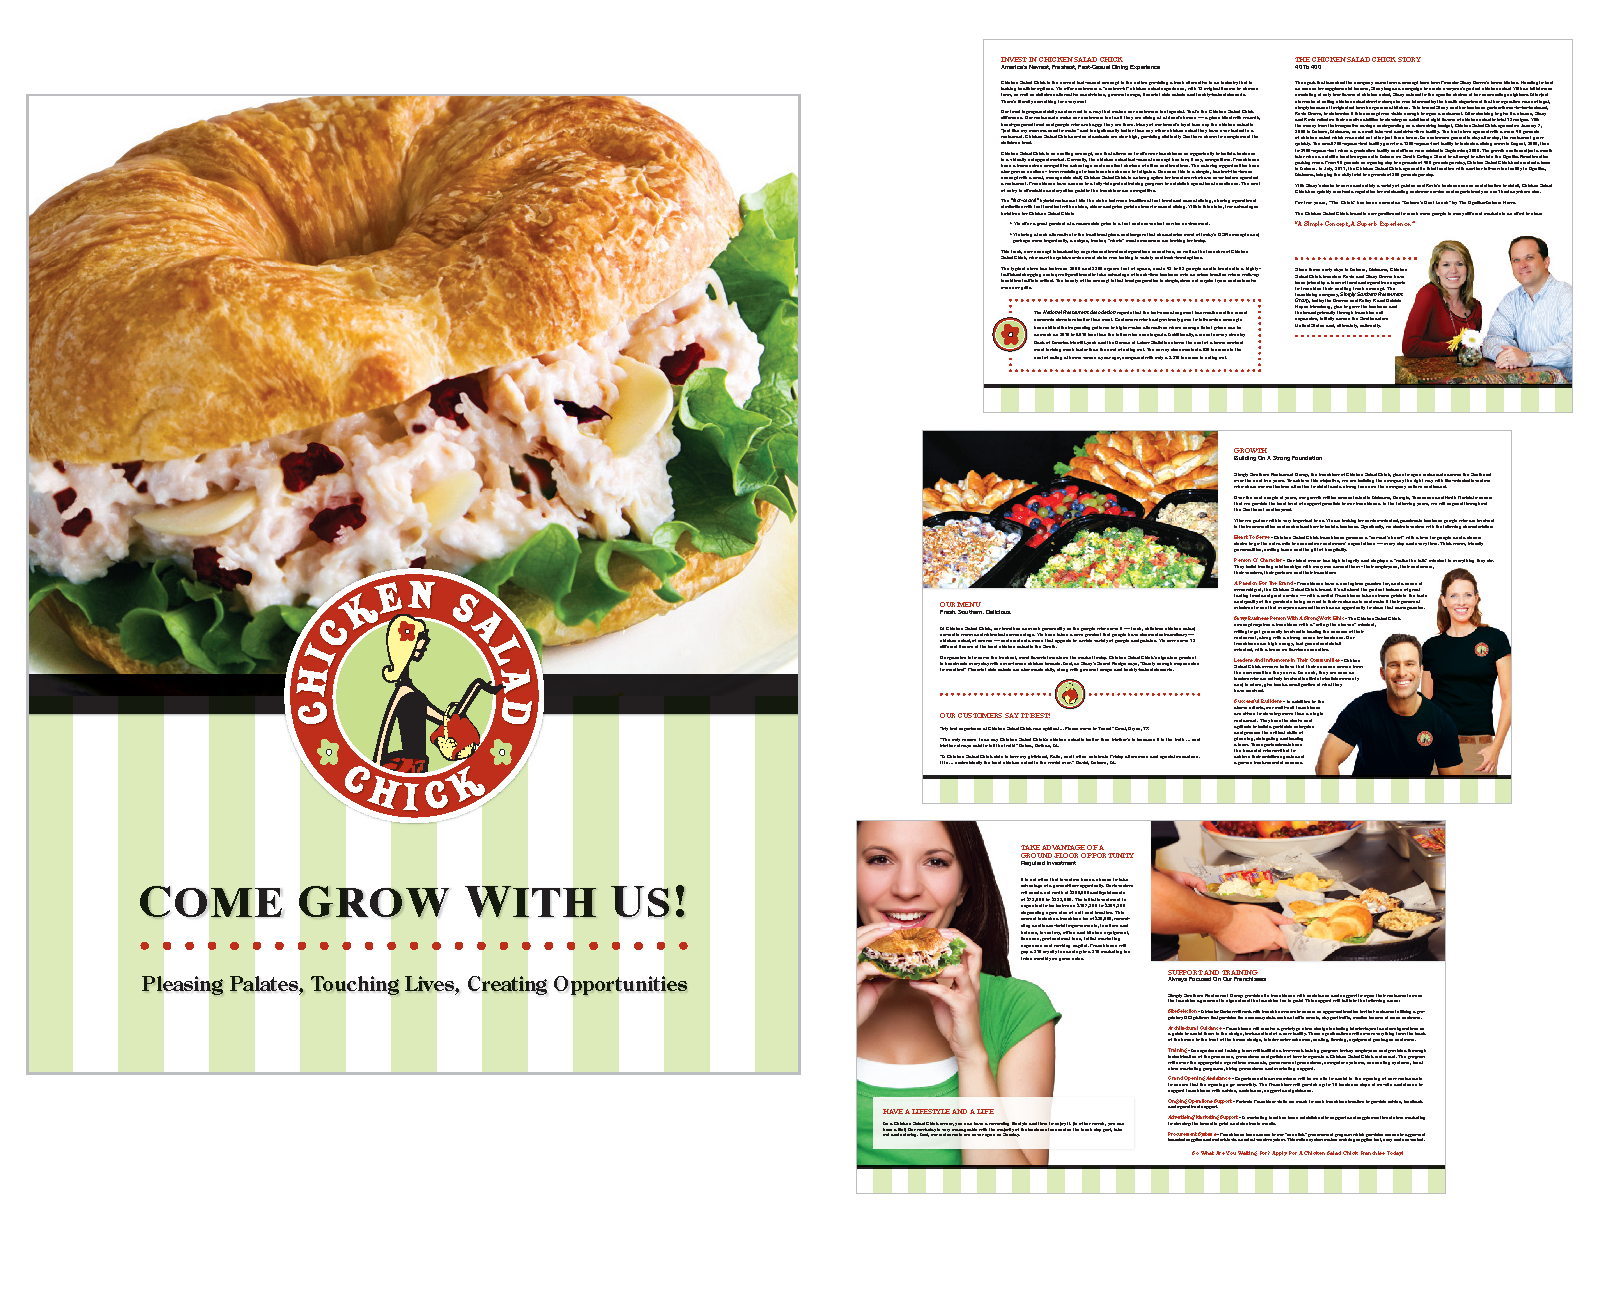 chicken salad chick marketing brochure